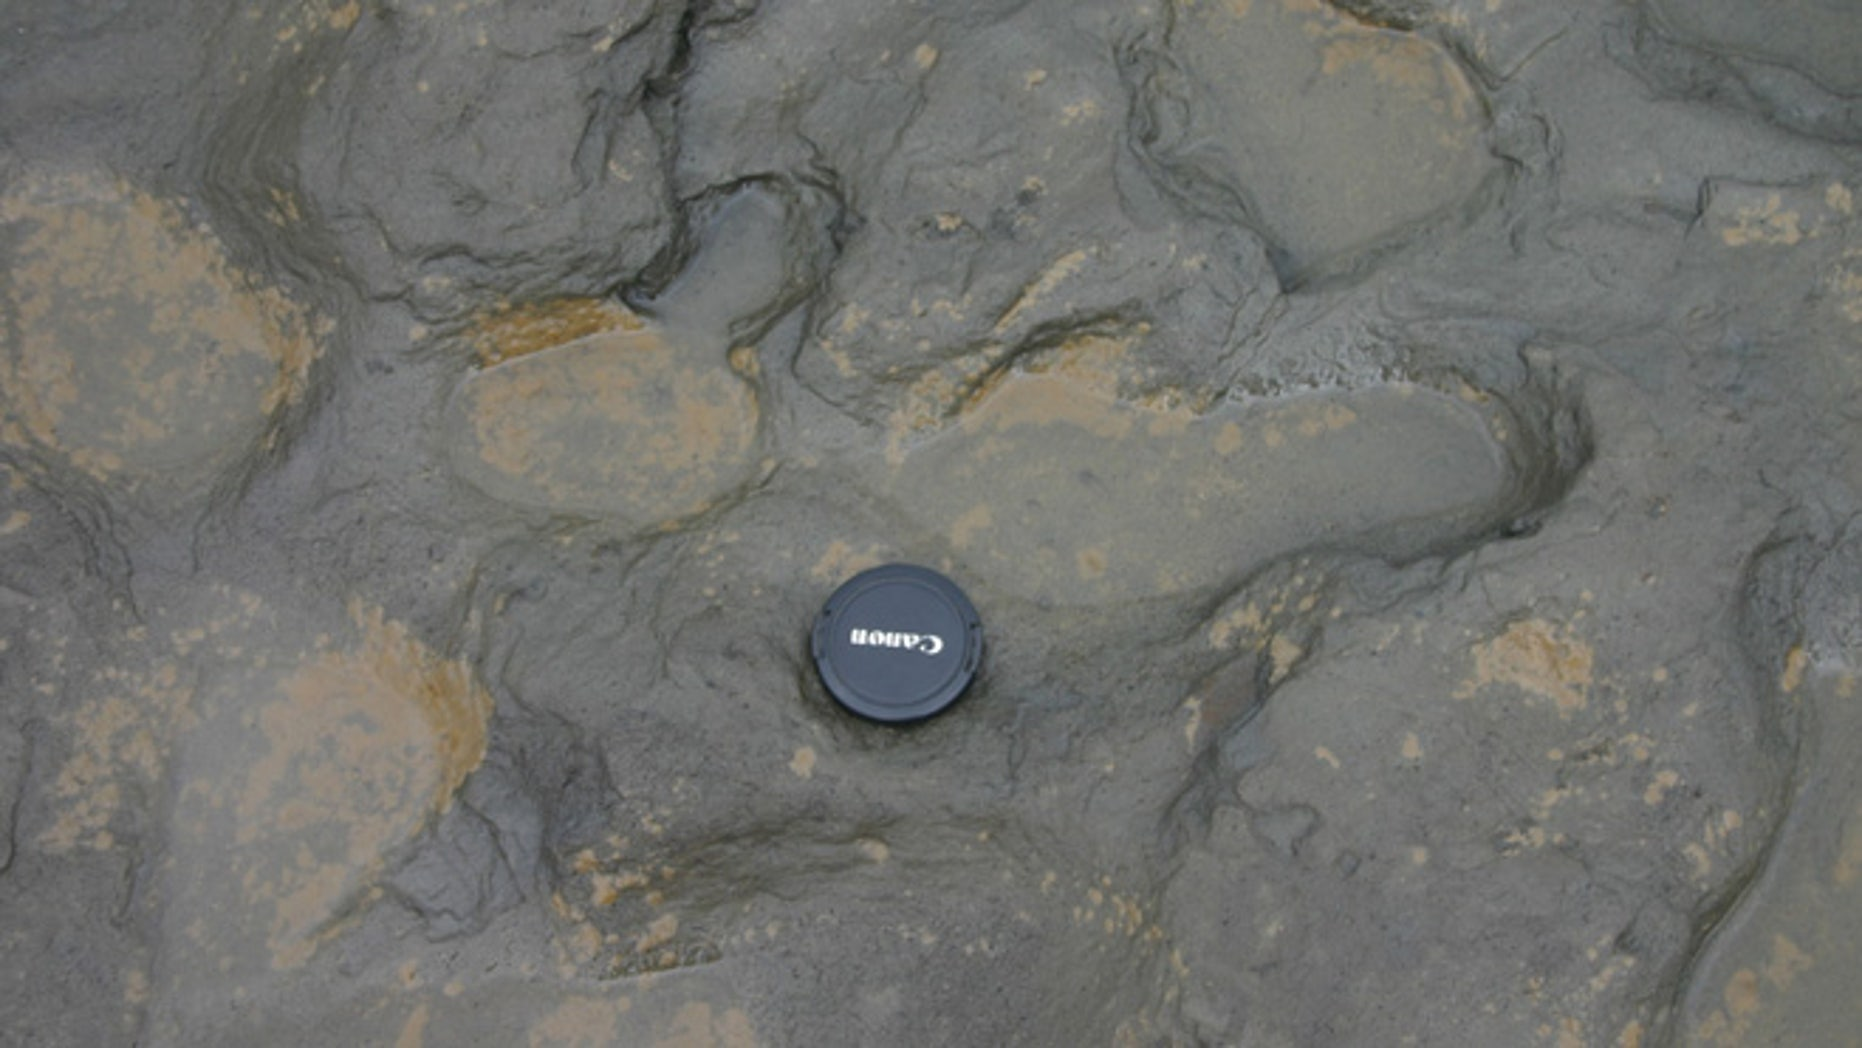 Undated handout photo issued by the British Museum of some of the  human footprints, thought to be more than 800,000 years old, found in silt on the beach at Happisburgh on the Norfolk coast of England, with a camera lens cap laid beside them to indicate scale.